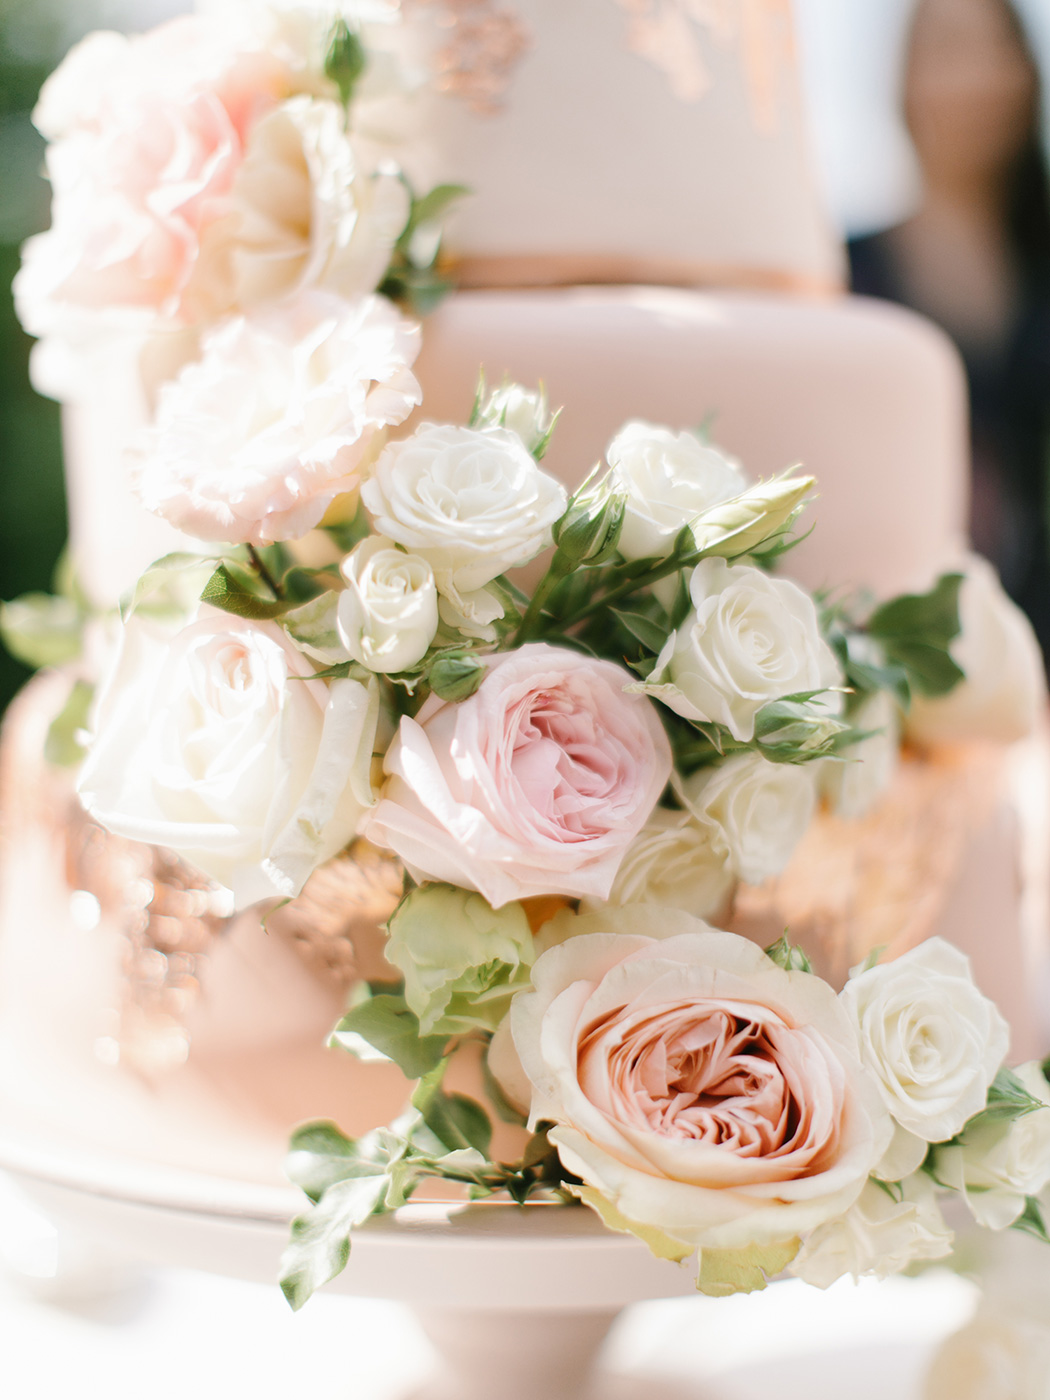 Wedding Cake | Rensche Mari Photography